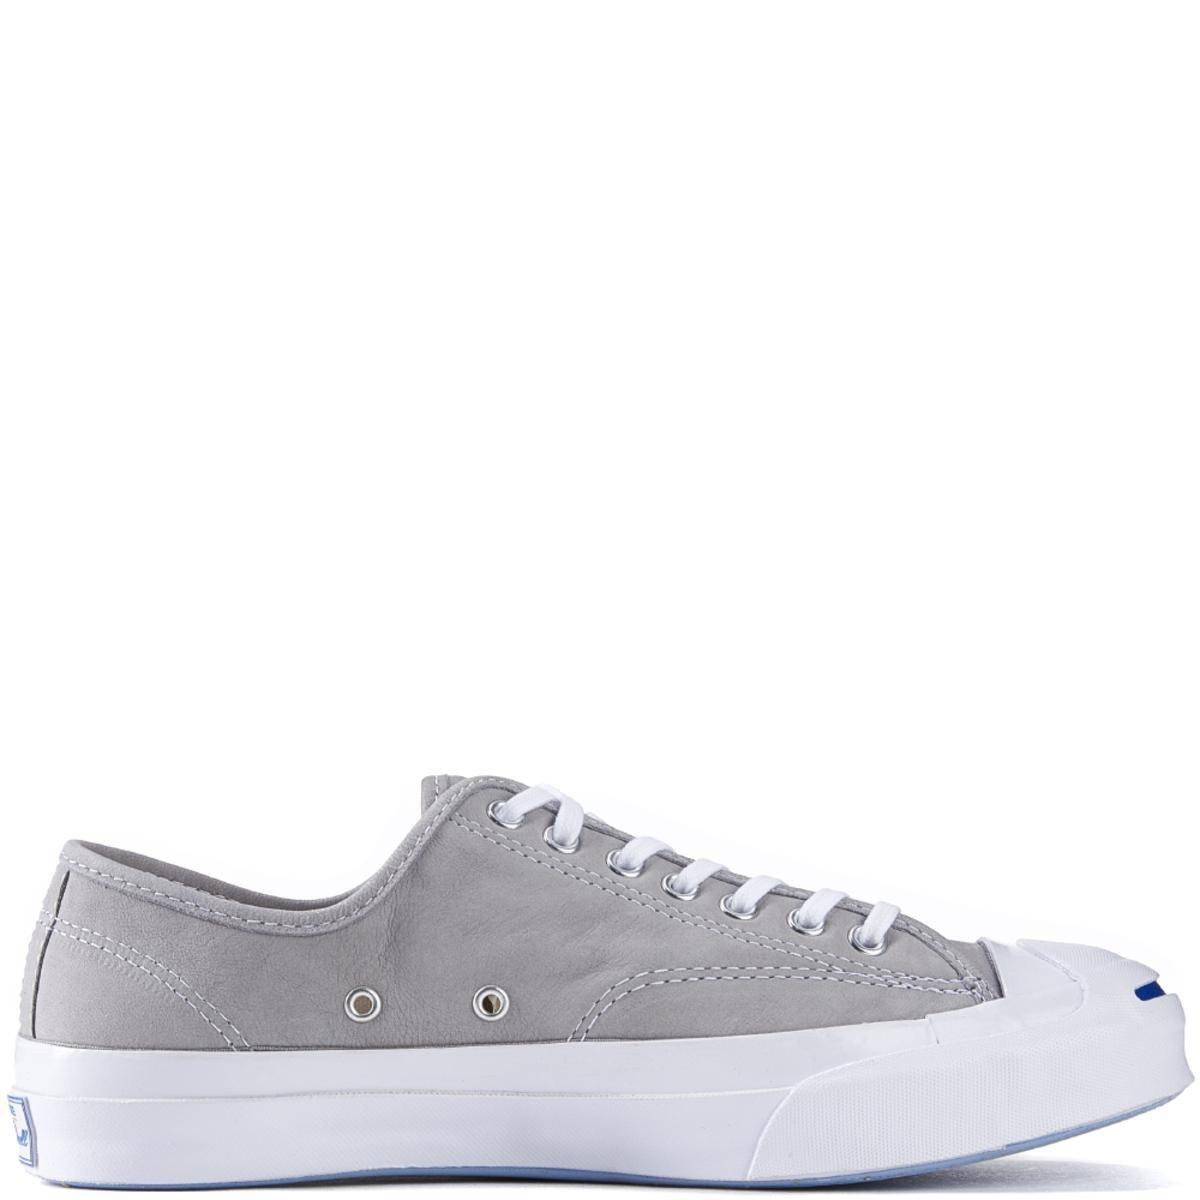 7af38a09b7e6 Converse - Jack Purcell Signature Nubuck Dolphin White Sneakers for Men -  Lyst. View fullscreen